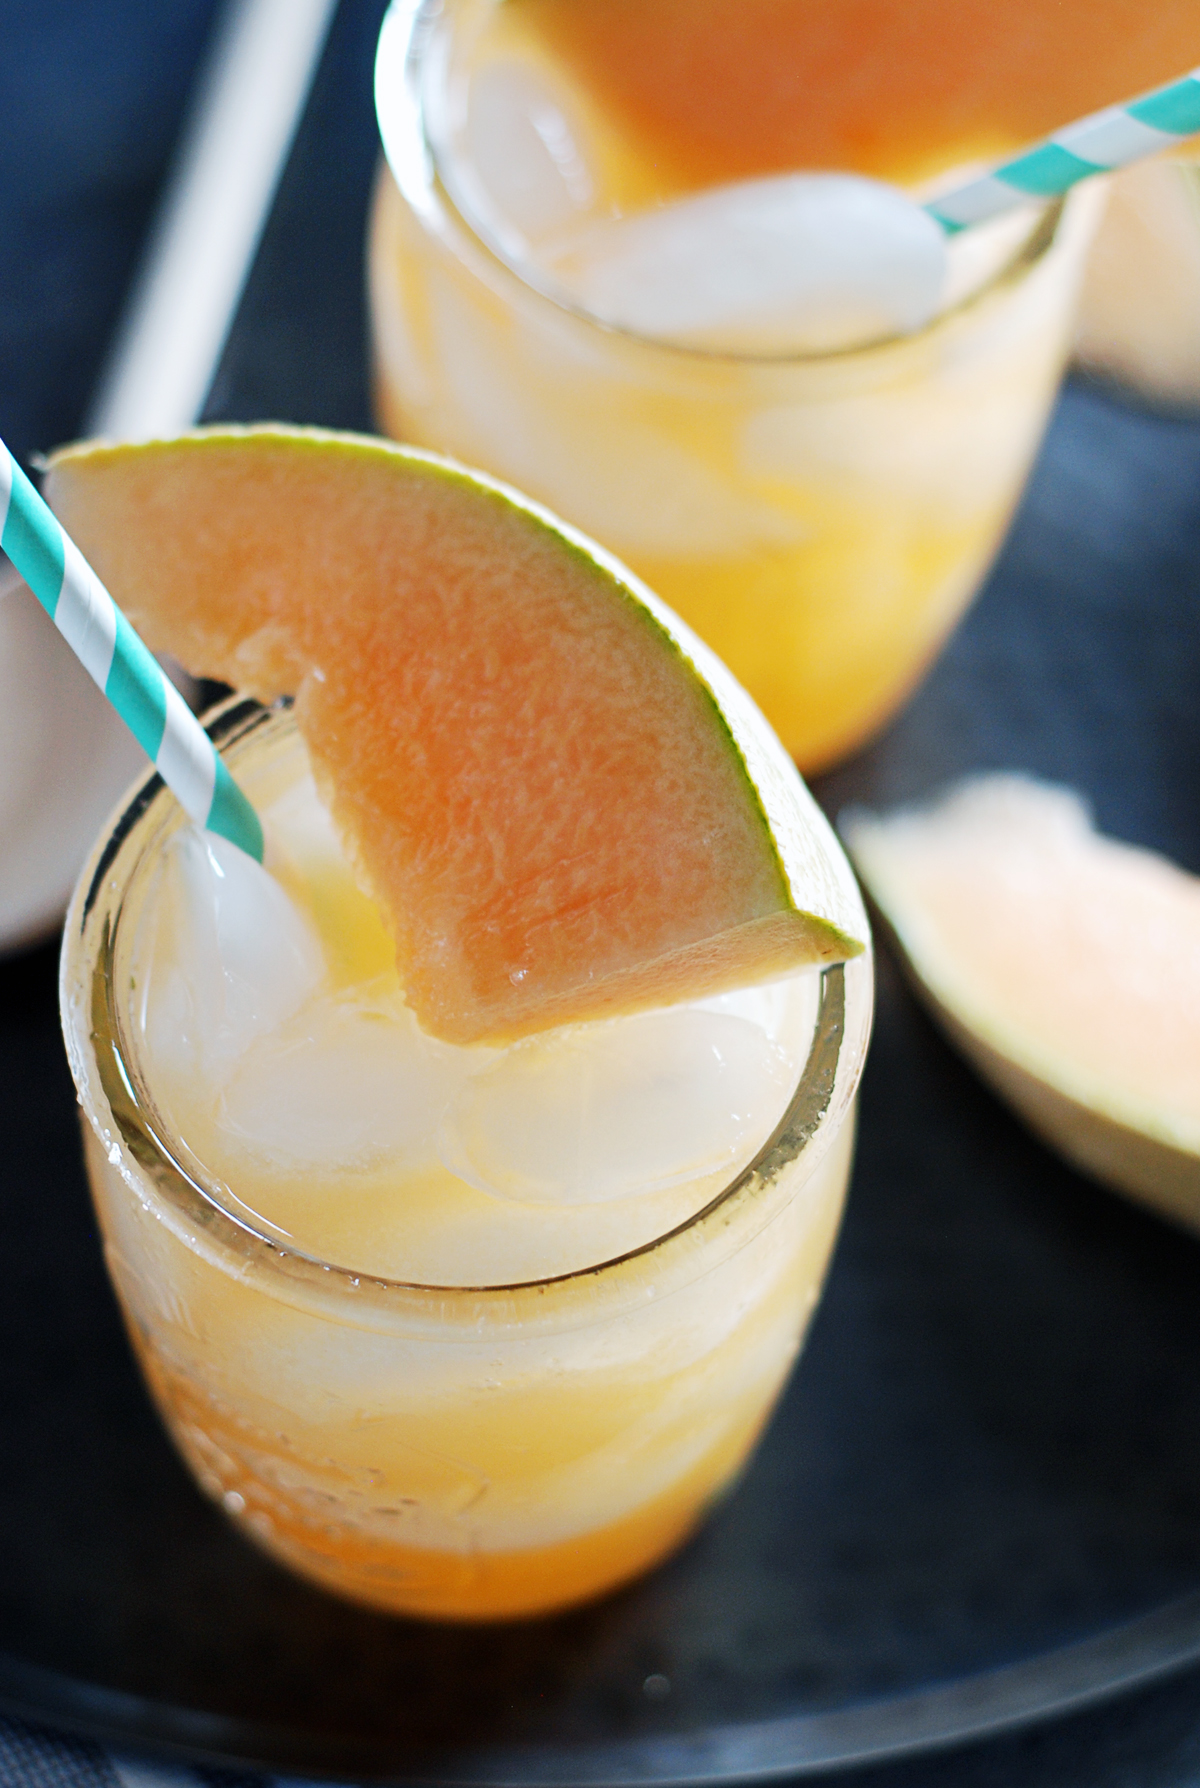 These rum and cantaloupe cocktails are crazy refreshing, and feature fresh melon juice, agave nectar, rum, and mint!